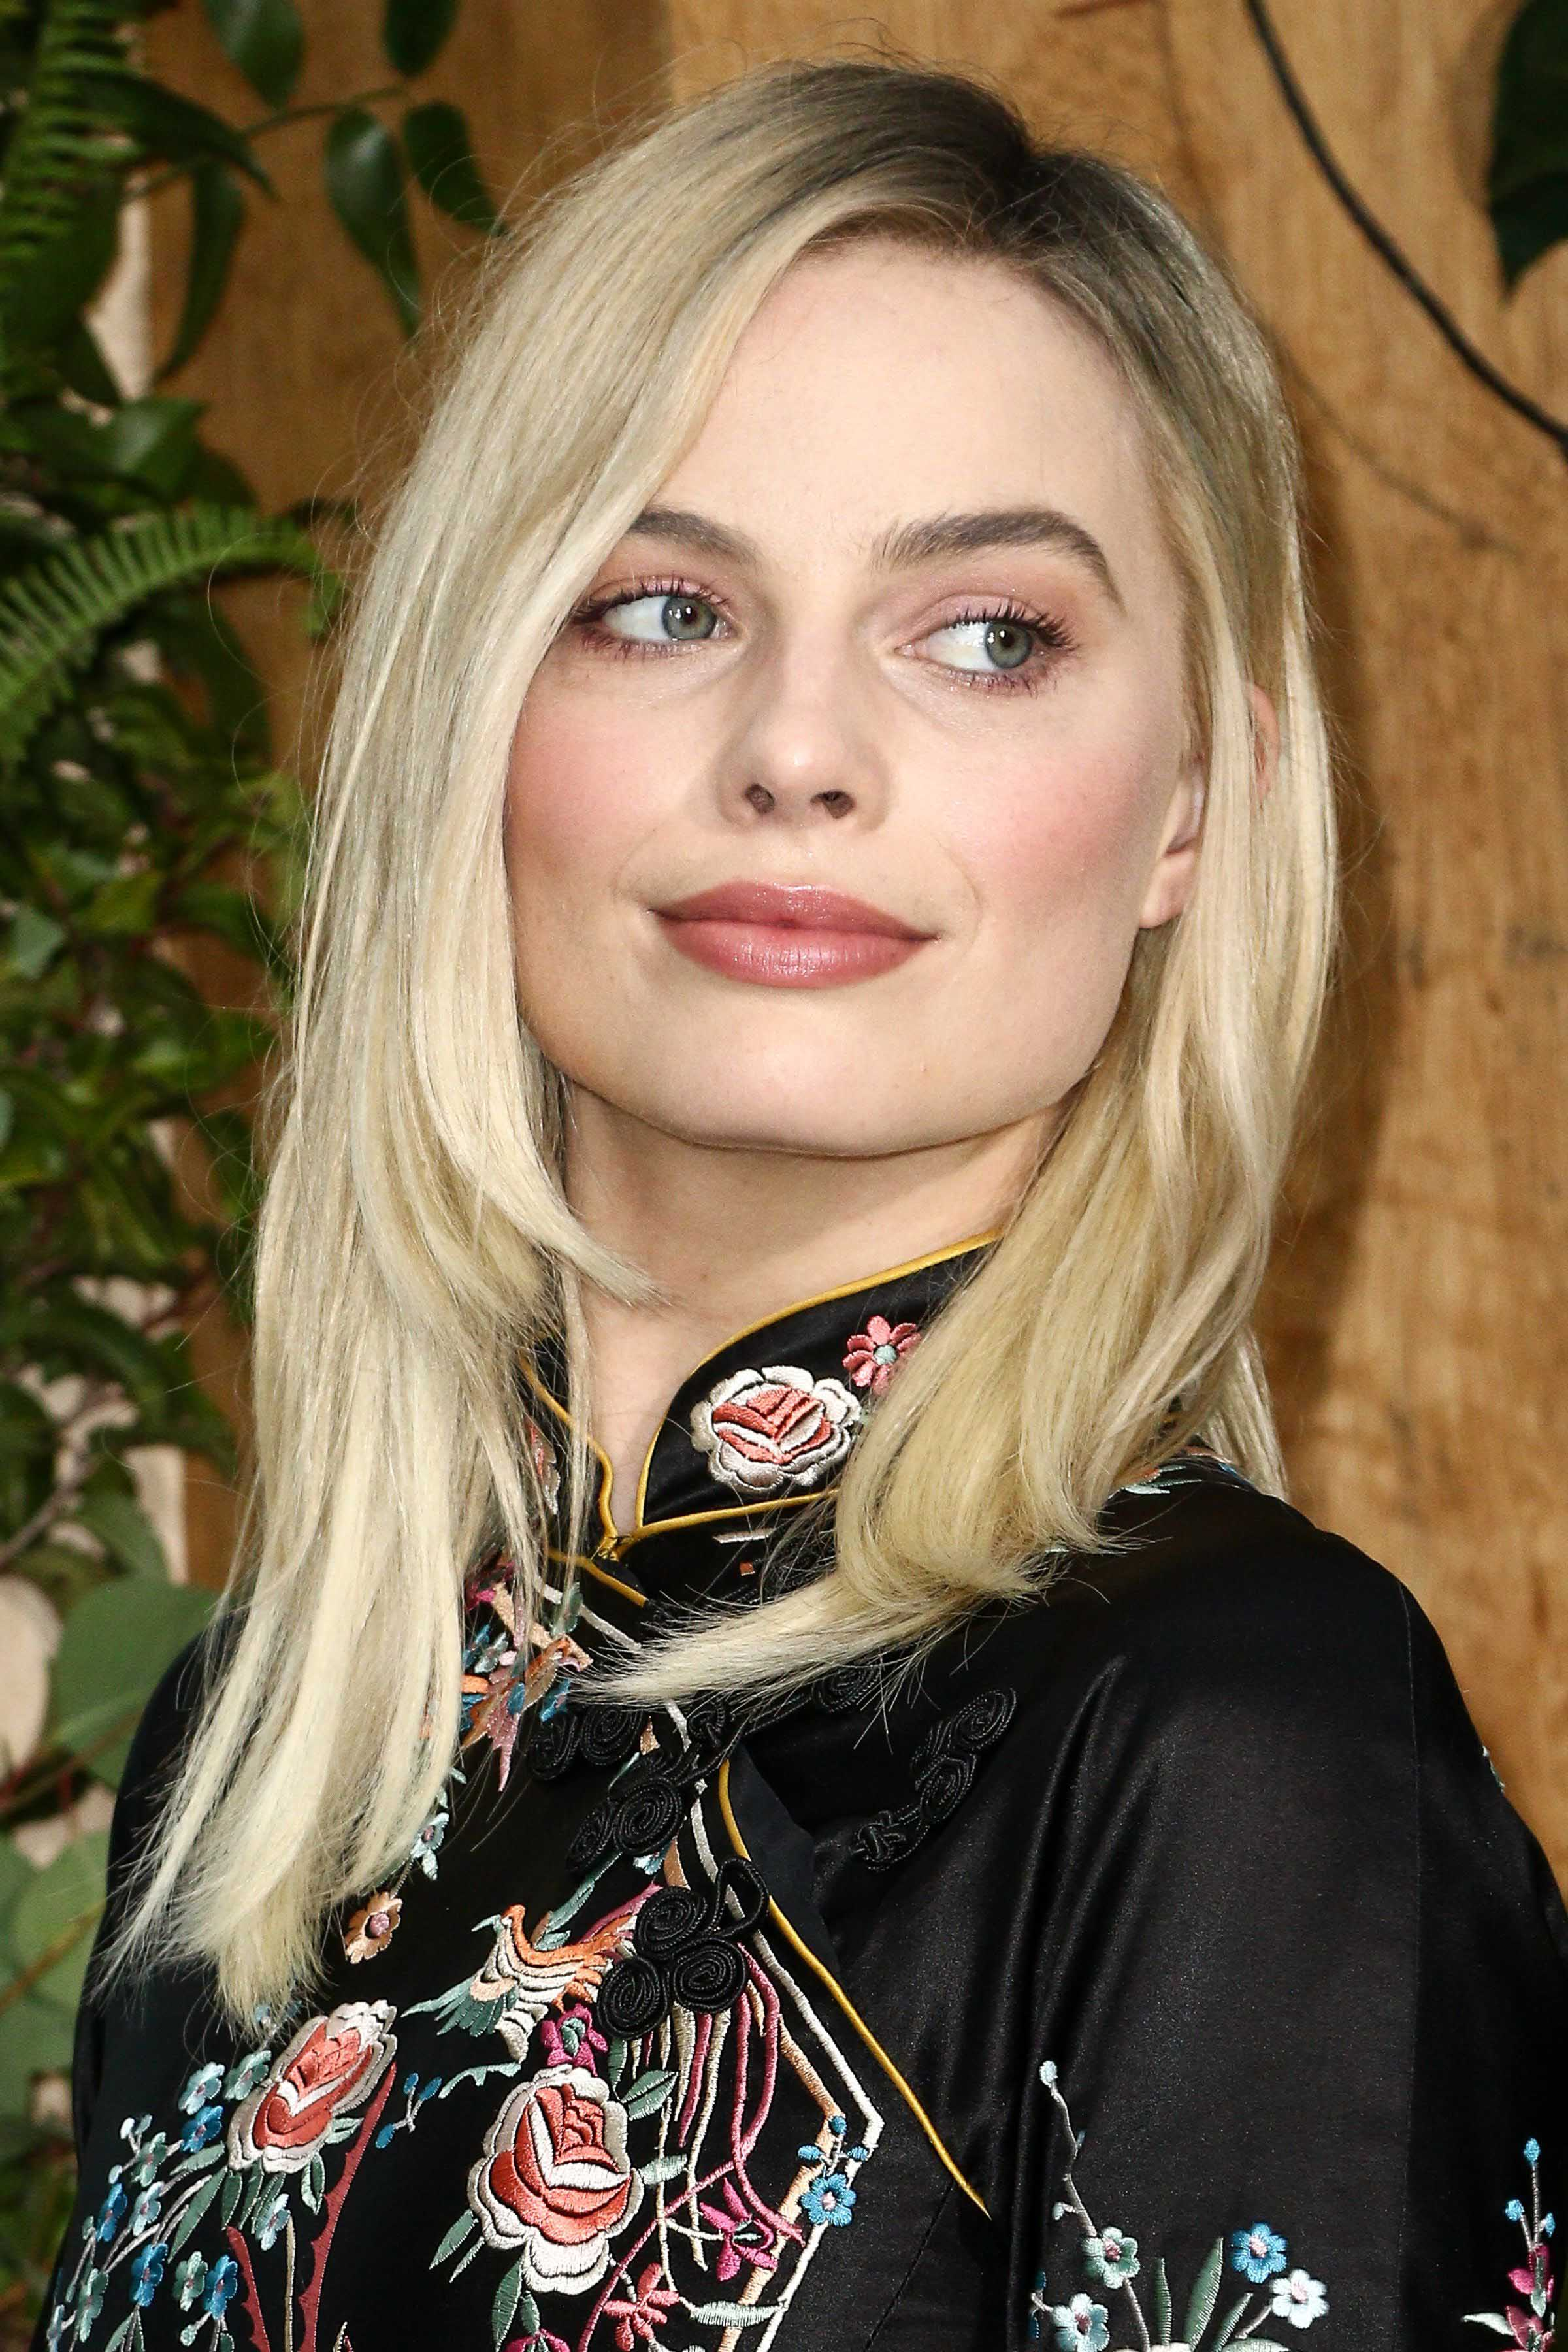 celebrity hair: All Things Hair - IMAGE - 2016 Margot Robbie blonde hair layers